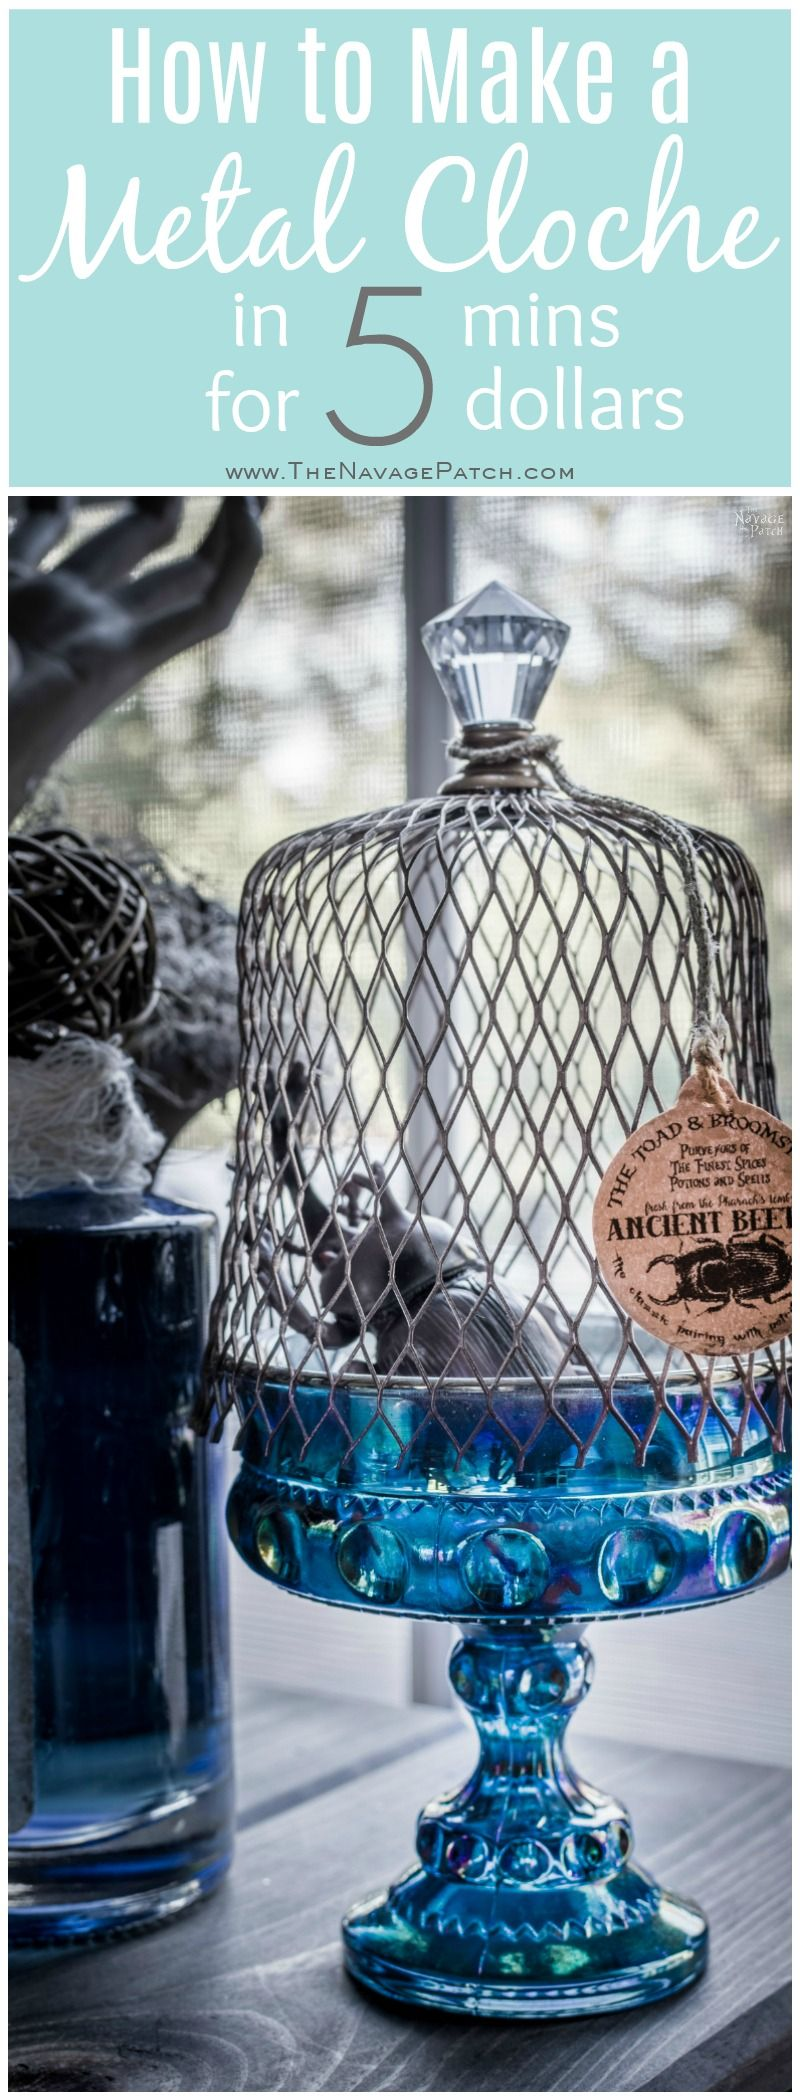 How to Make a Metal Cloche for 5 Dollars and in 5 Minutes | Halloween Apothecary Jars {and Free Printable Labels} | DIY Halloween decor | Harry Potter theme | Free Halloween printable with over 55 jar labels | Potions and spells | DIY Apothecary jars decor | DIY Halloween prop | TheNavagePatch.com